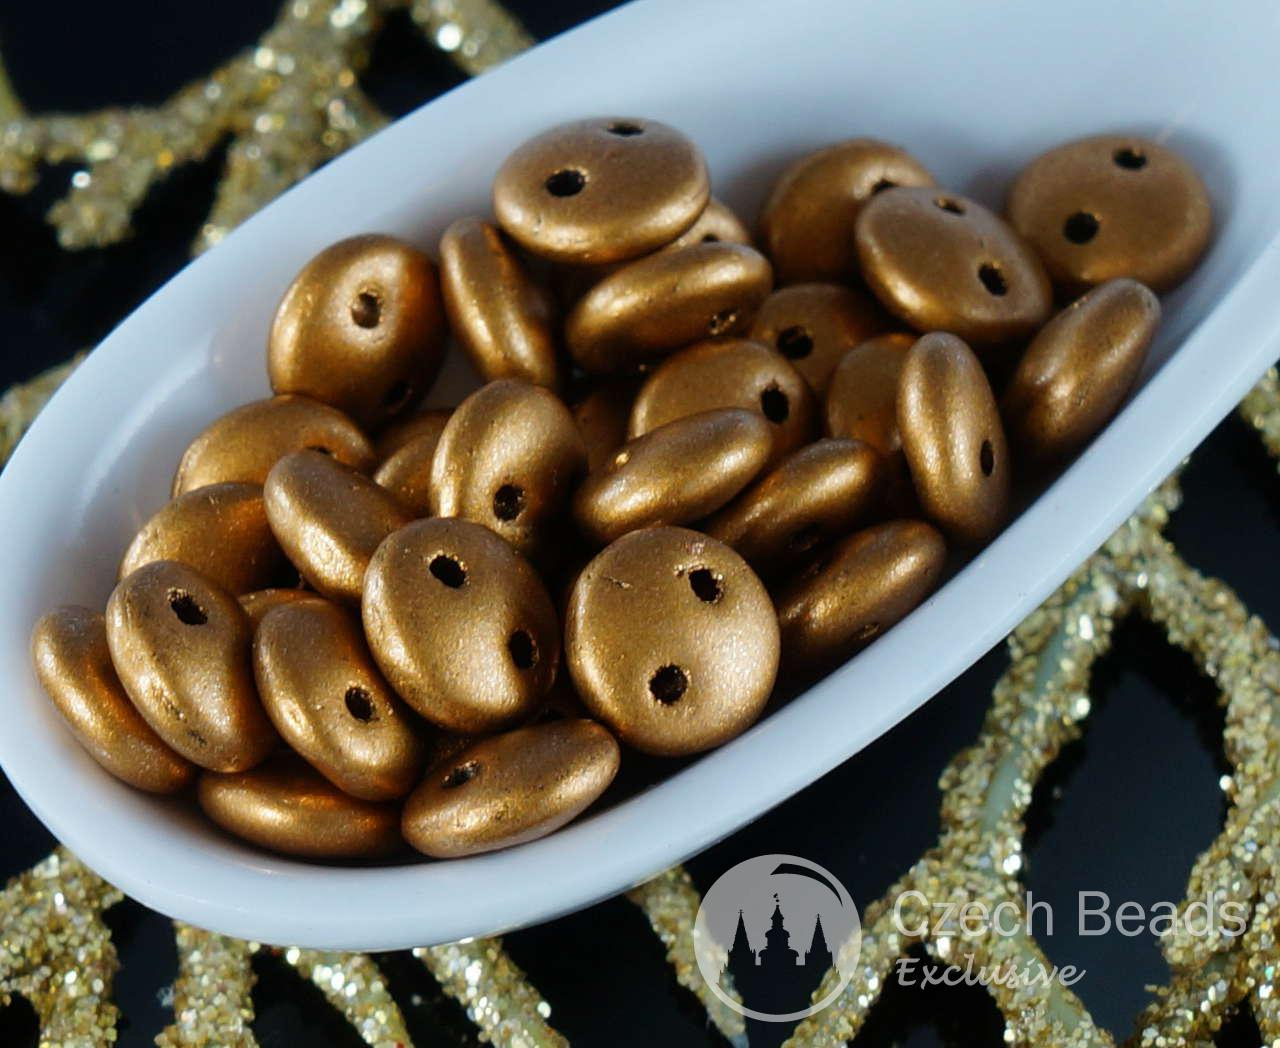 60pcs Matte Metallic Goldenrod CzechMates Lentil Czech Glass Beads Two Hole Gold 6mm for $3.97 from Czech Beads Exclusive